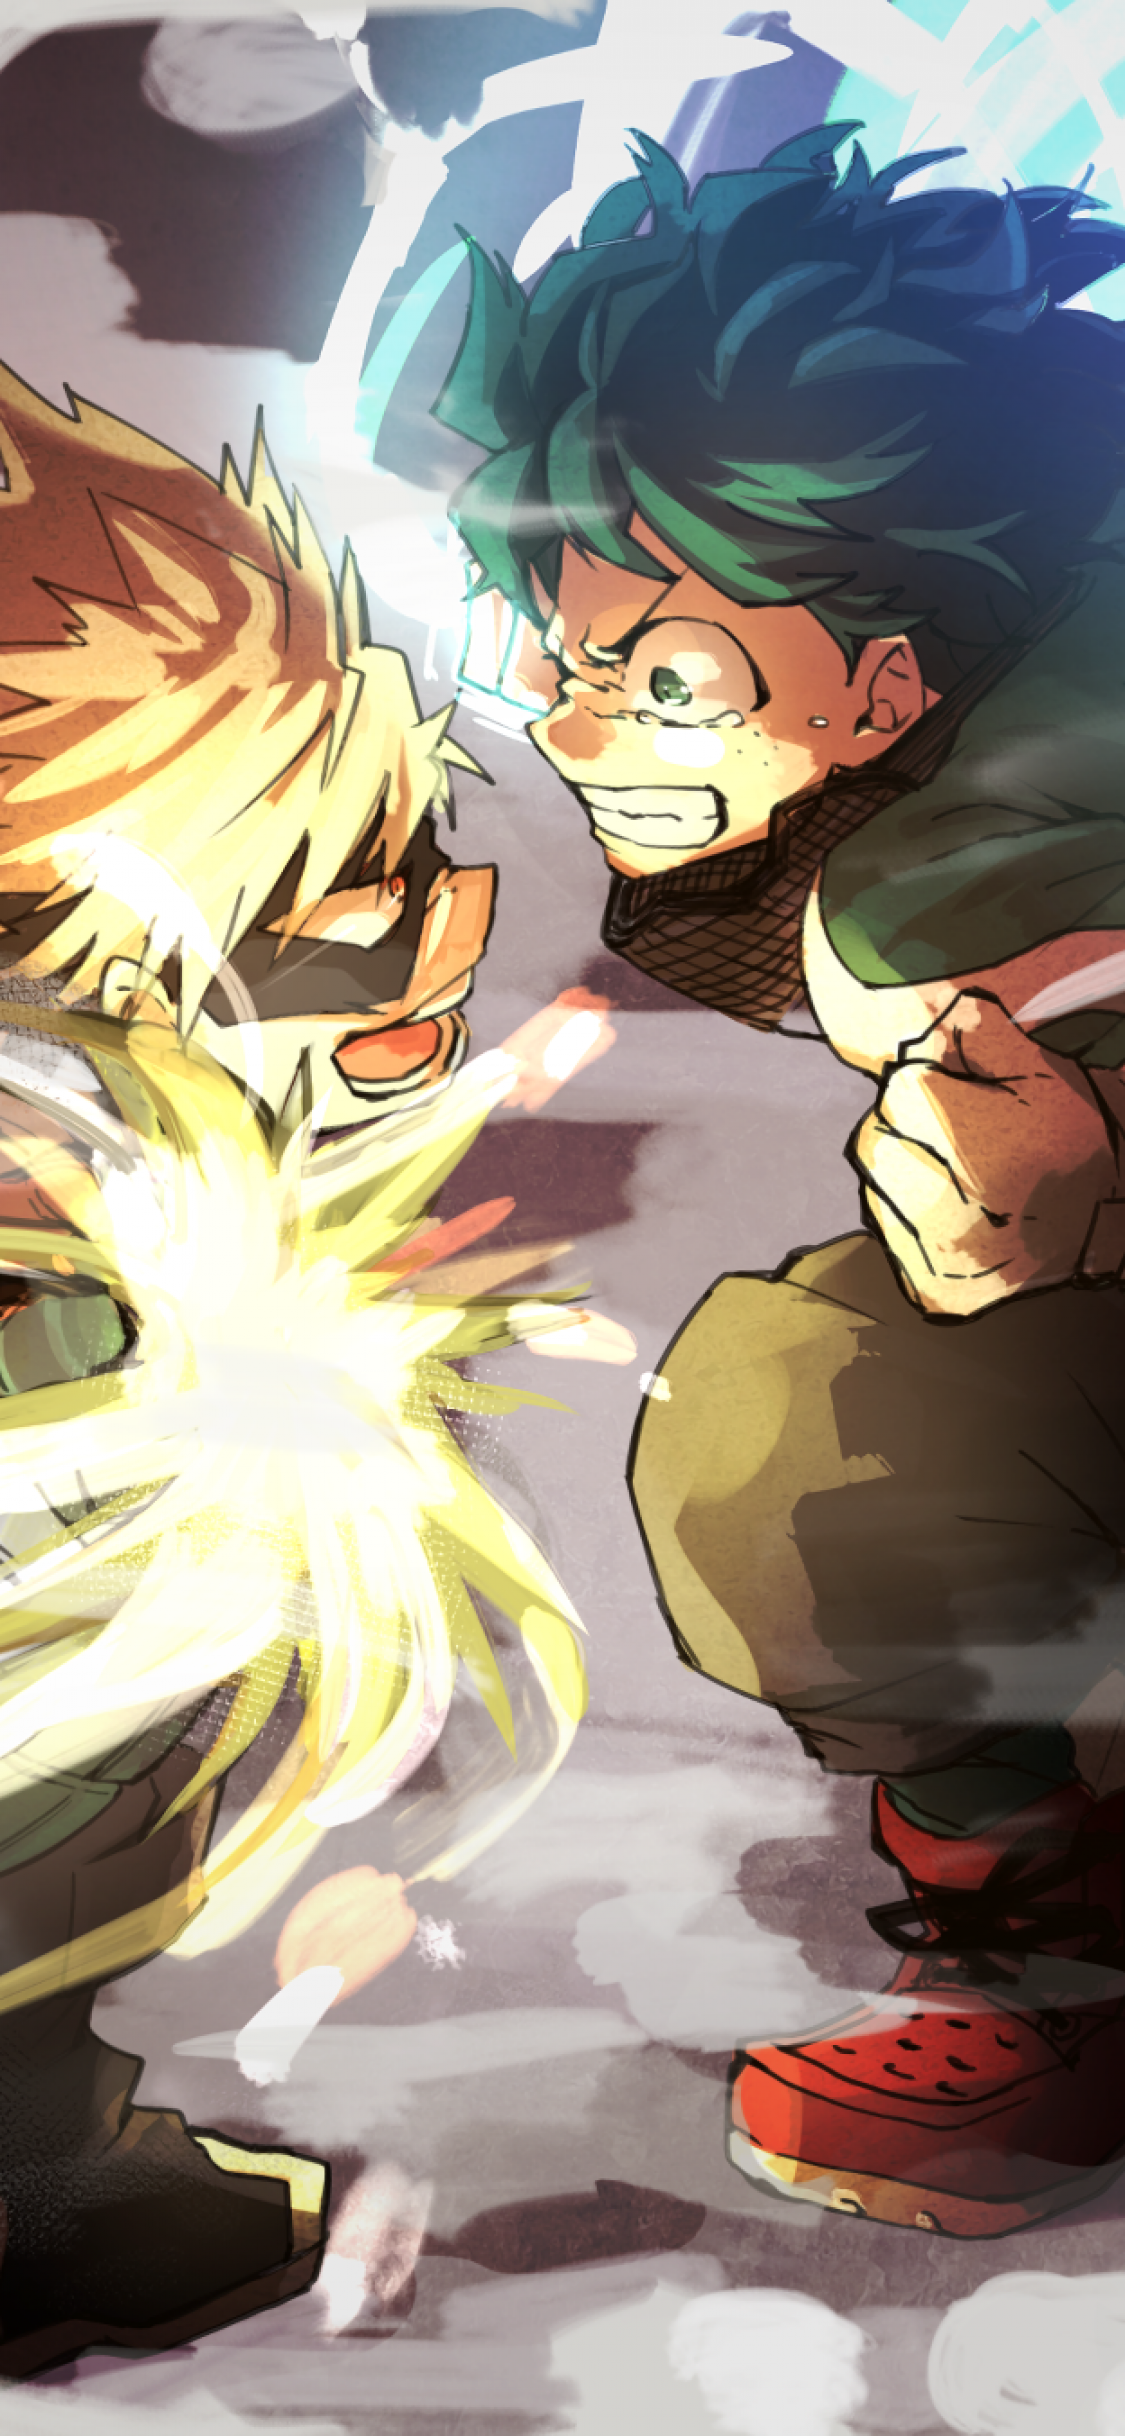 Download 1125x2436 Midoriya Izuku, Bakugou Katsuki, Boku No Hero